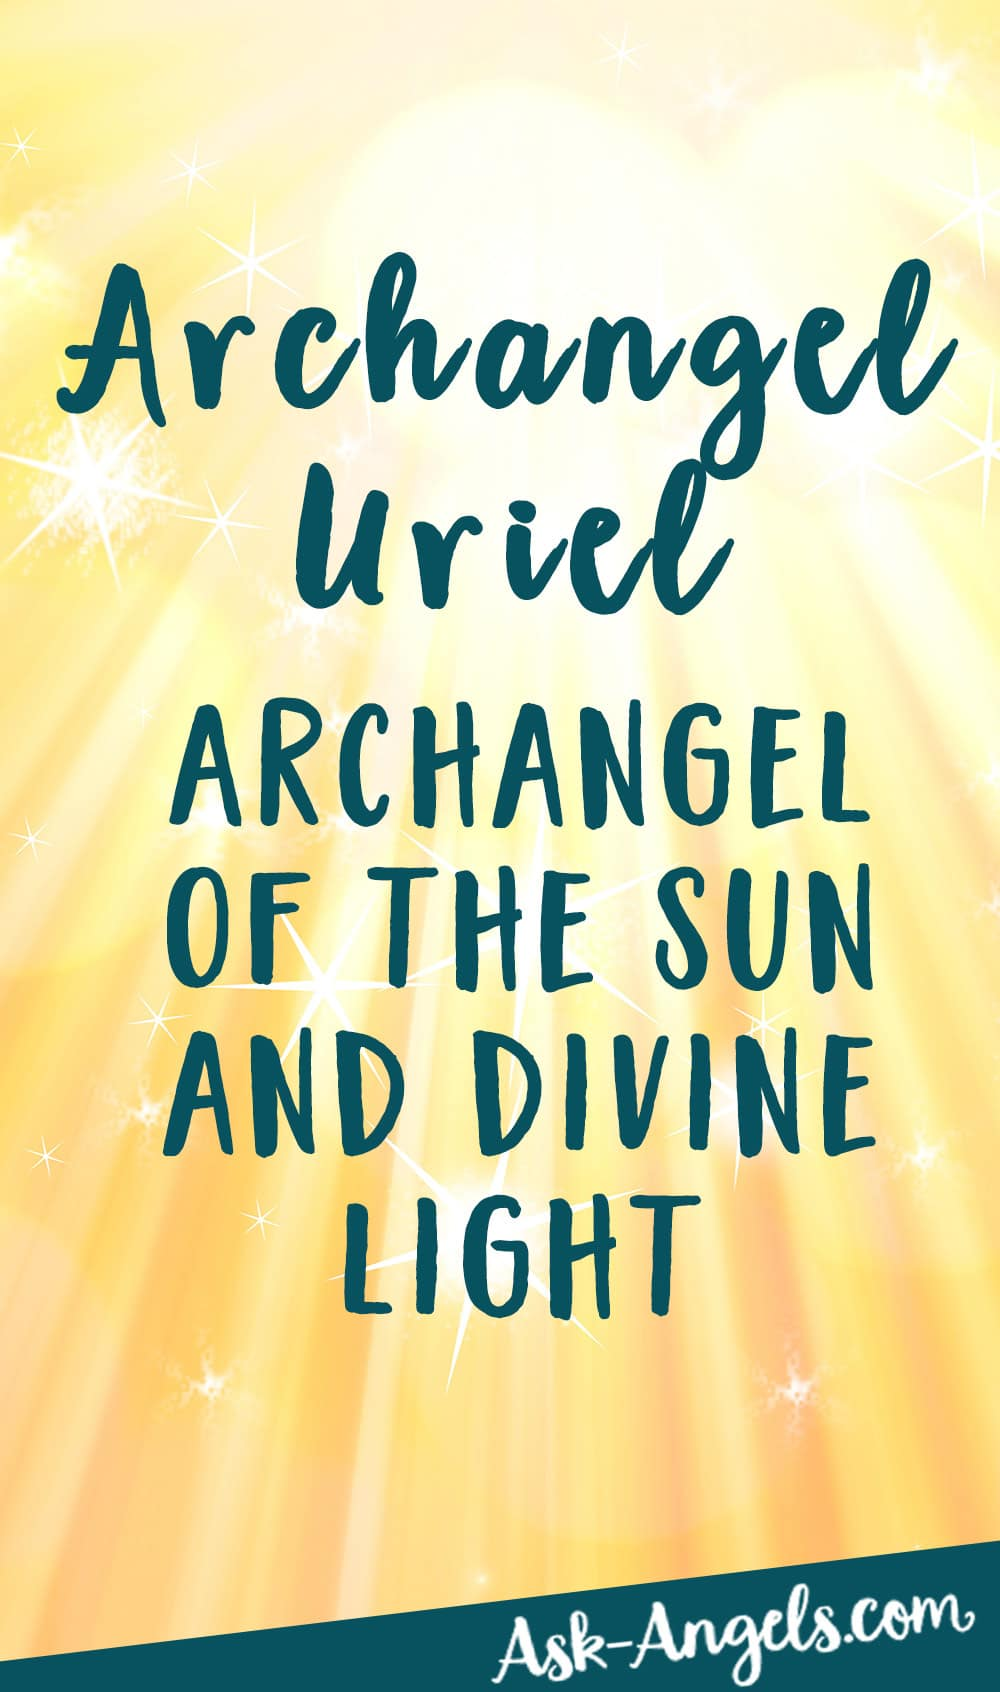 Archangel Uriel - Archangel of the Sun and Divine Light